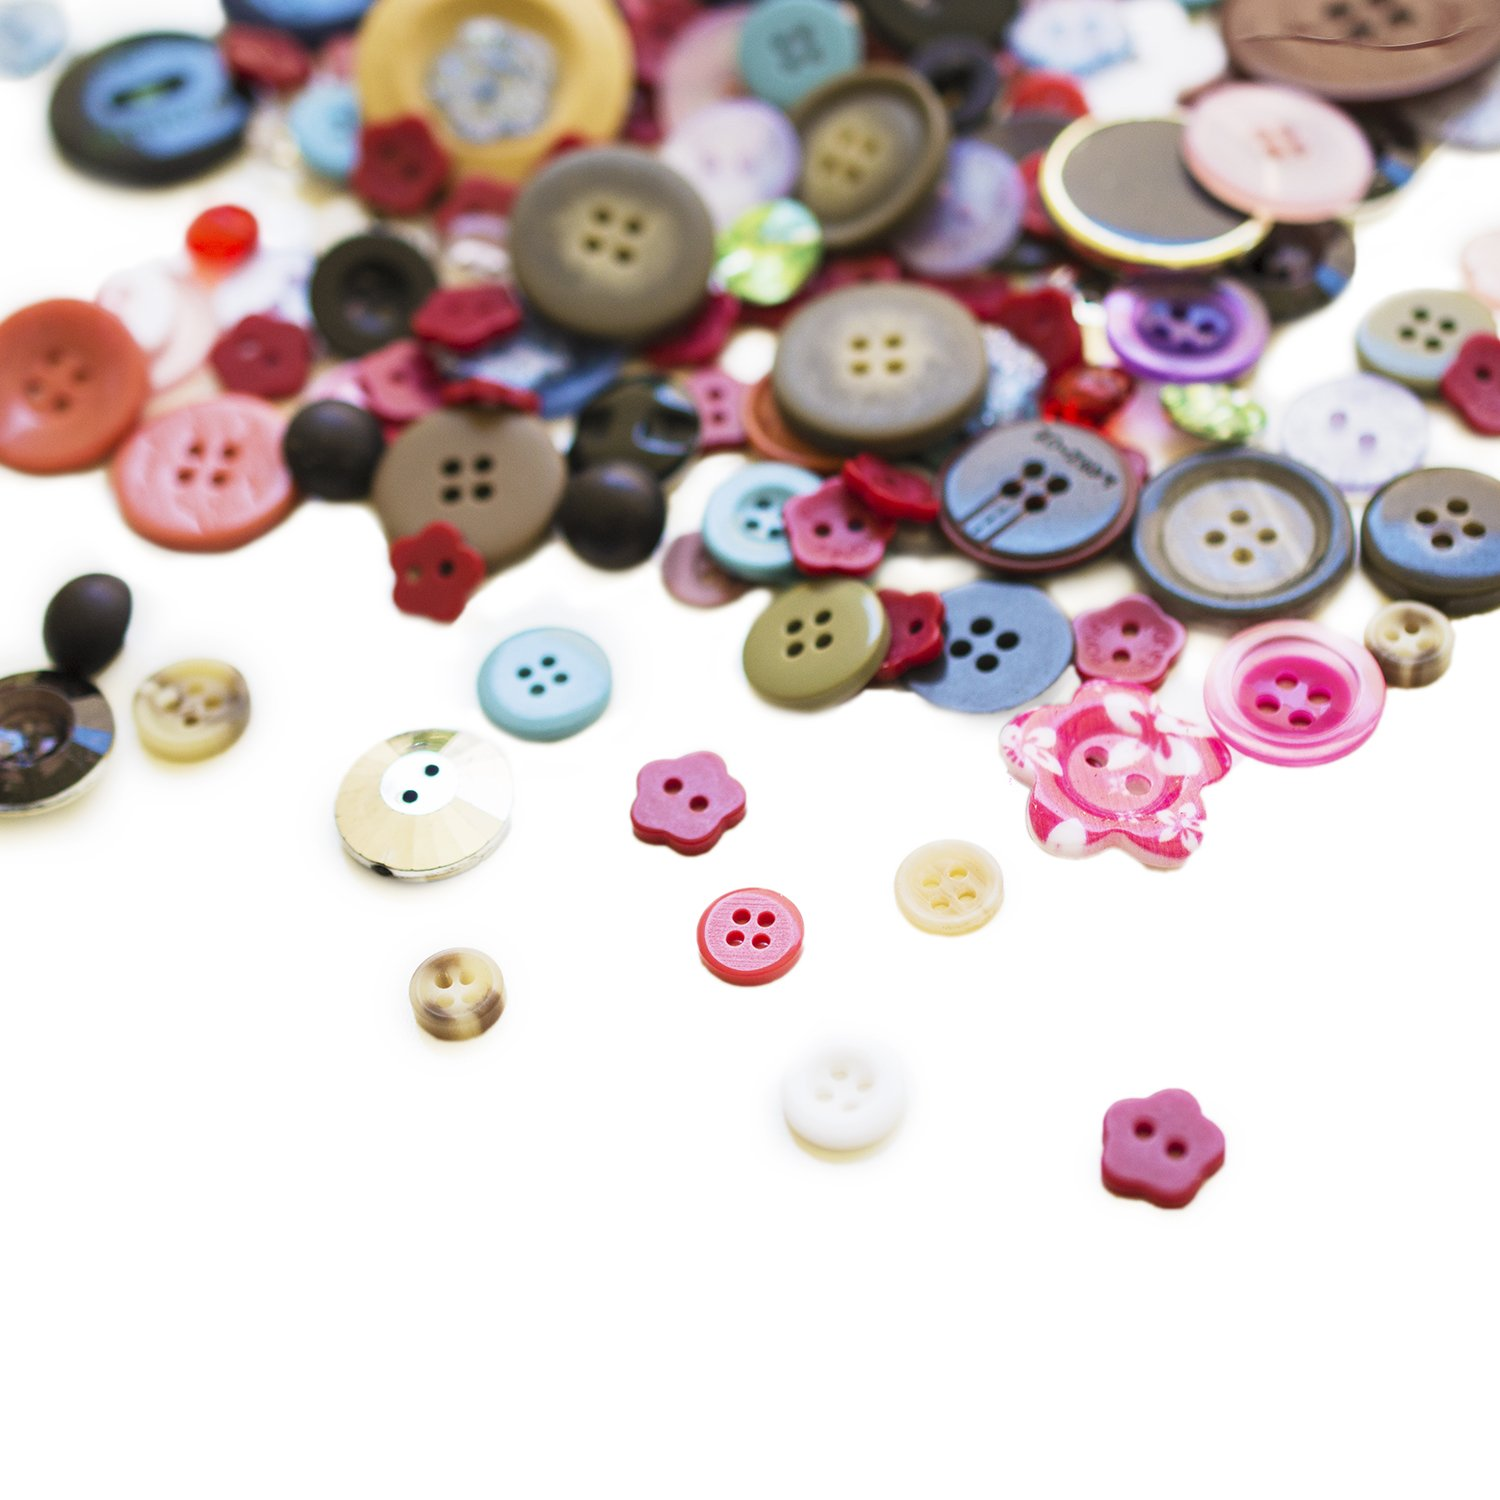 Scrambled Assortment Bag of Buttons for Arts & Crafts, Decoration, Collections, Sewing, and more! Different Colors and Size from 3/8 to 1.5 (100 Pack) Super Z Outlet SZ041